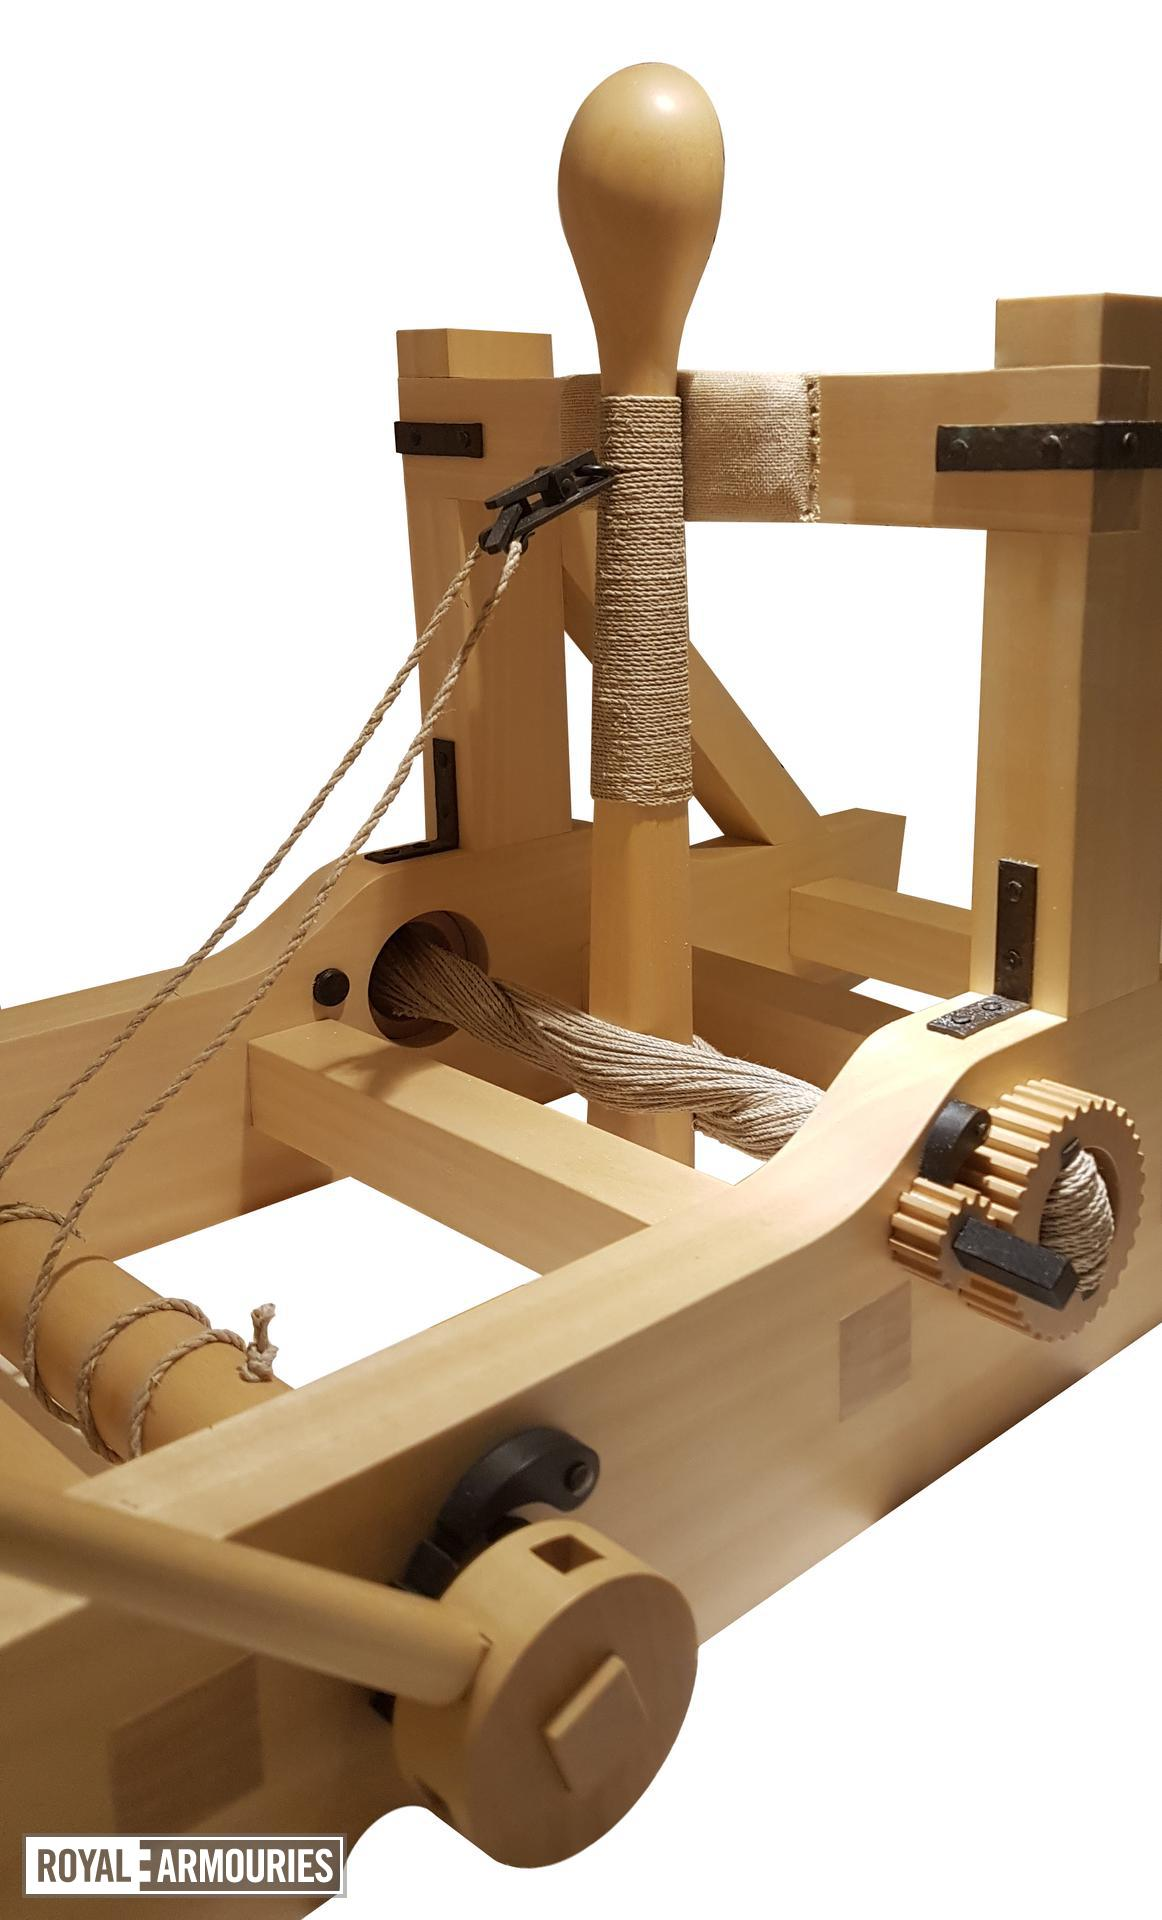 Wooden model of a torsion catapult or mangon. Detal showing the throwing arm through the twisted cords. British, 1994 (M.92)